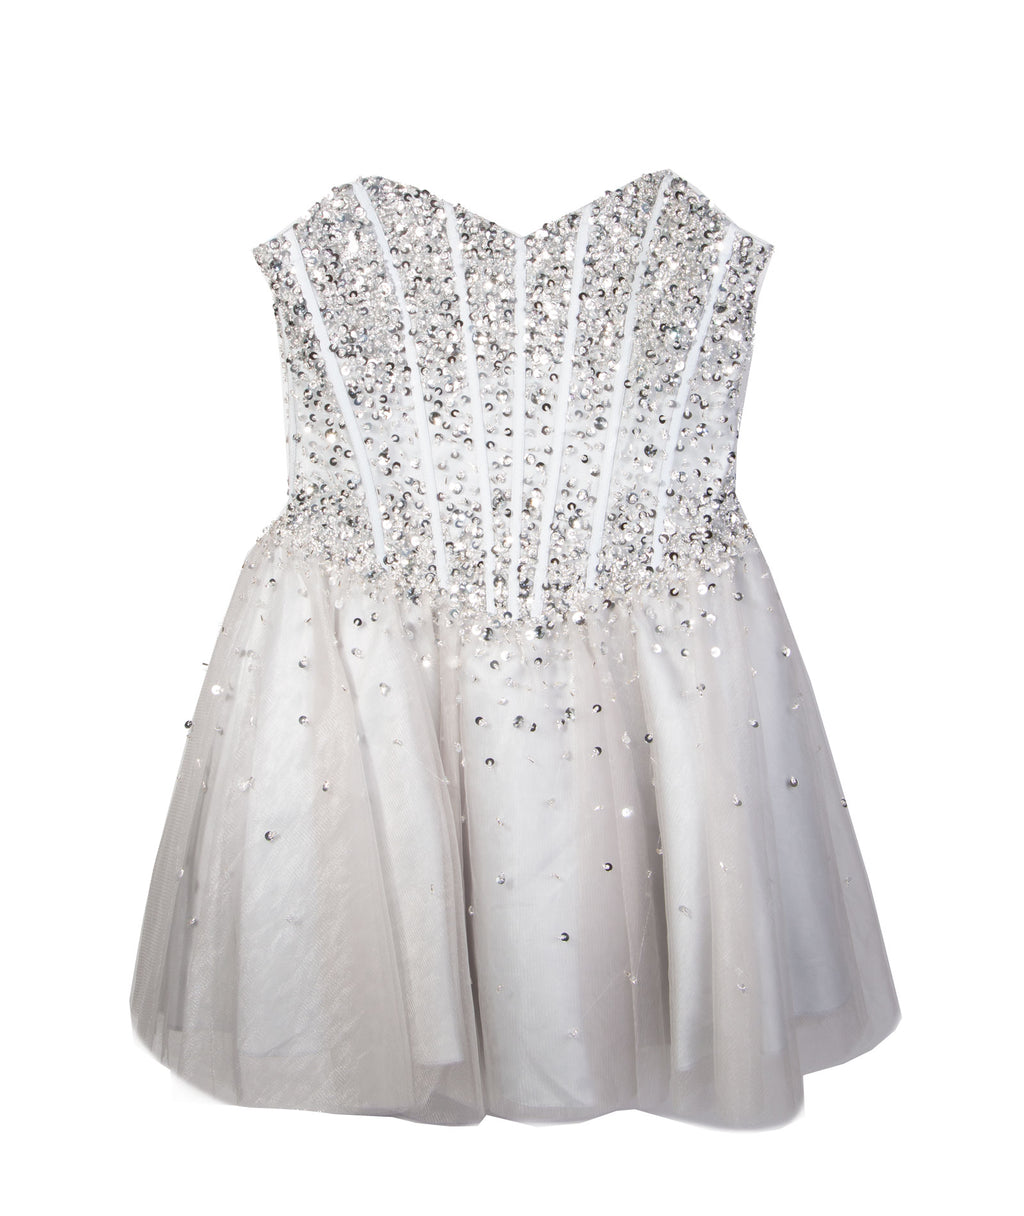 Jovani Silver with Silver Sequin Tutu